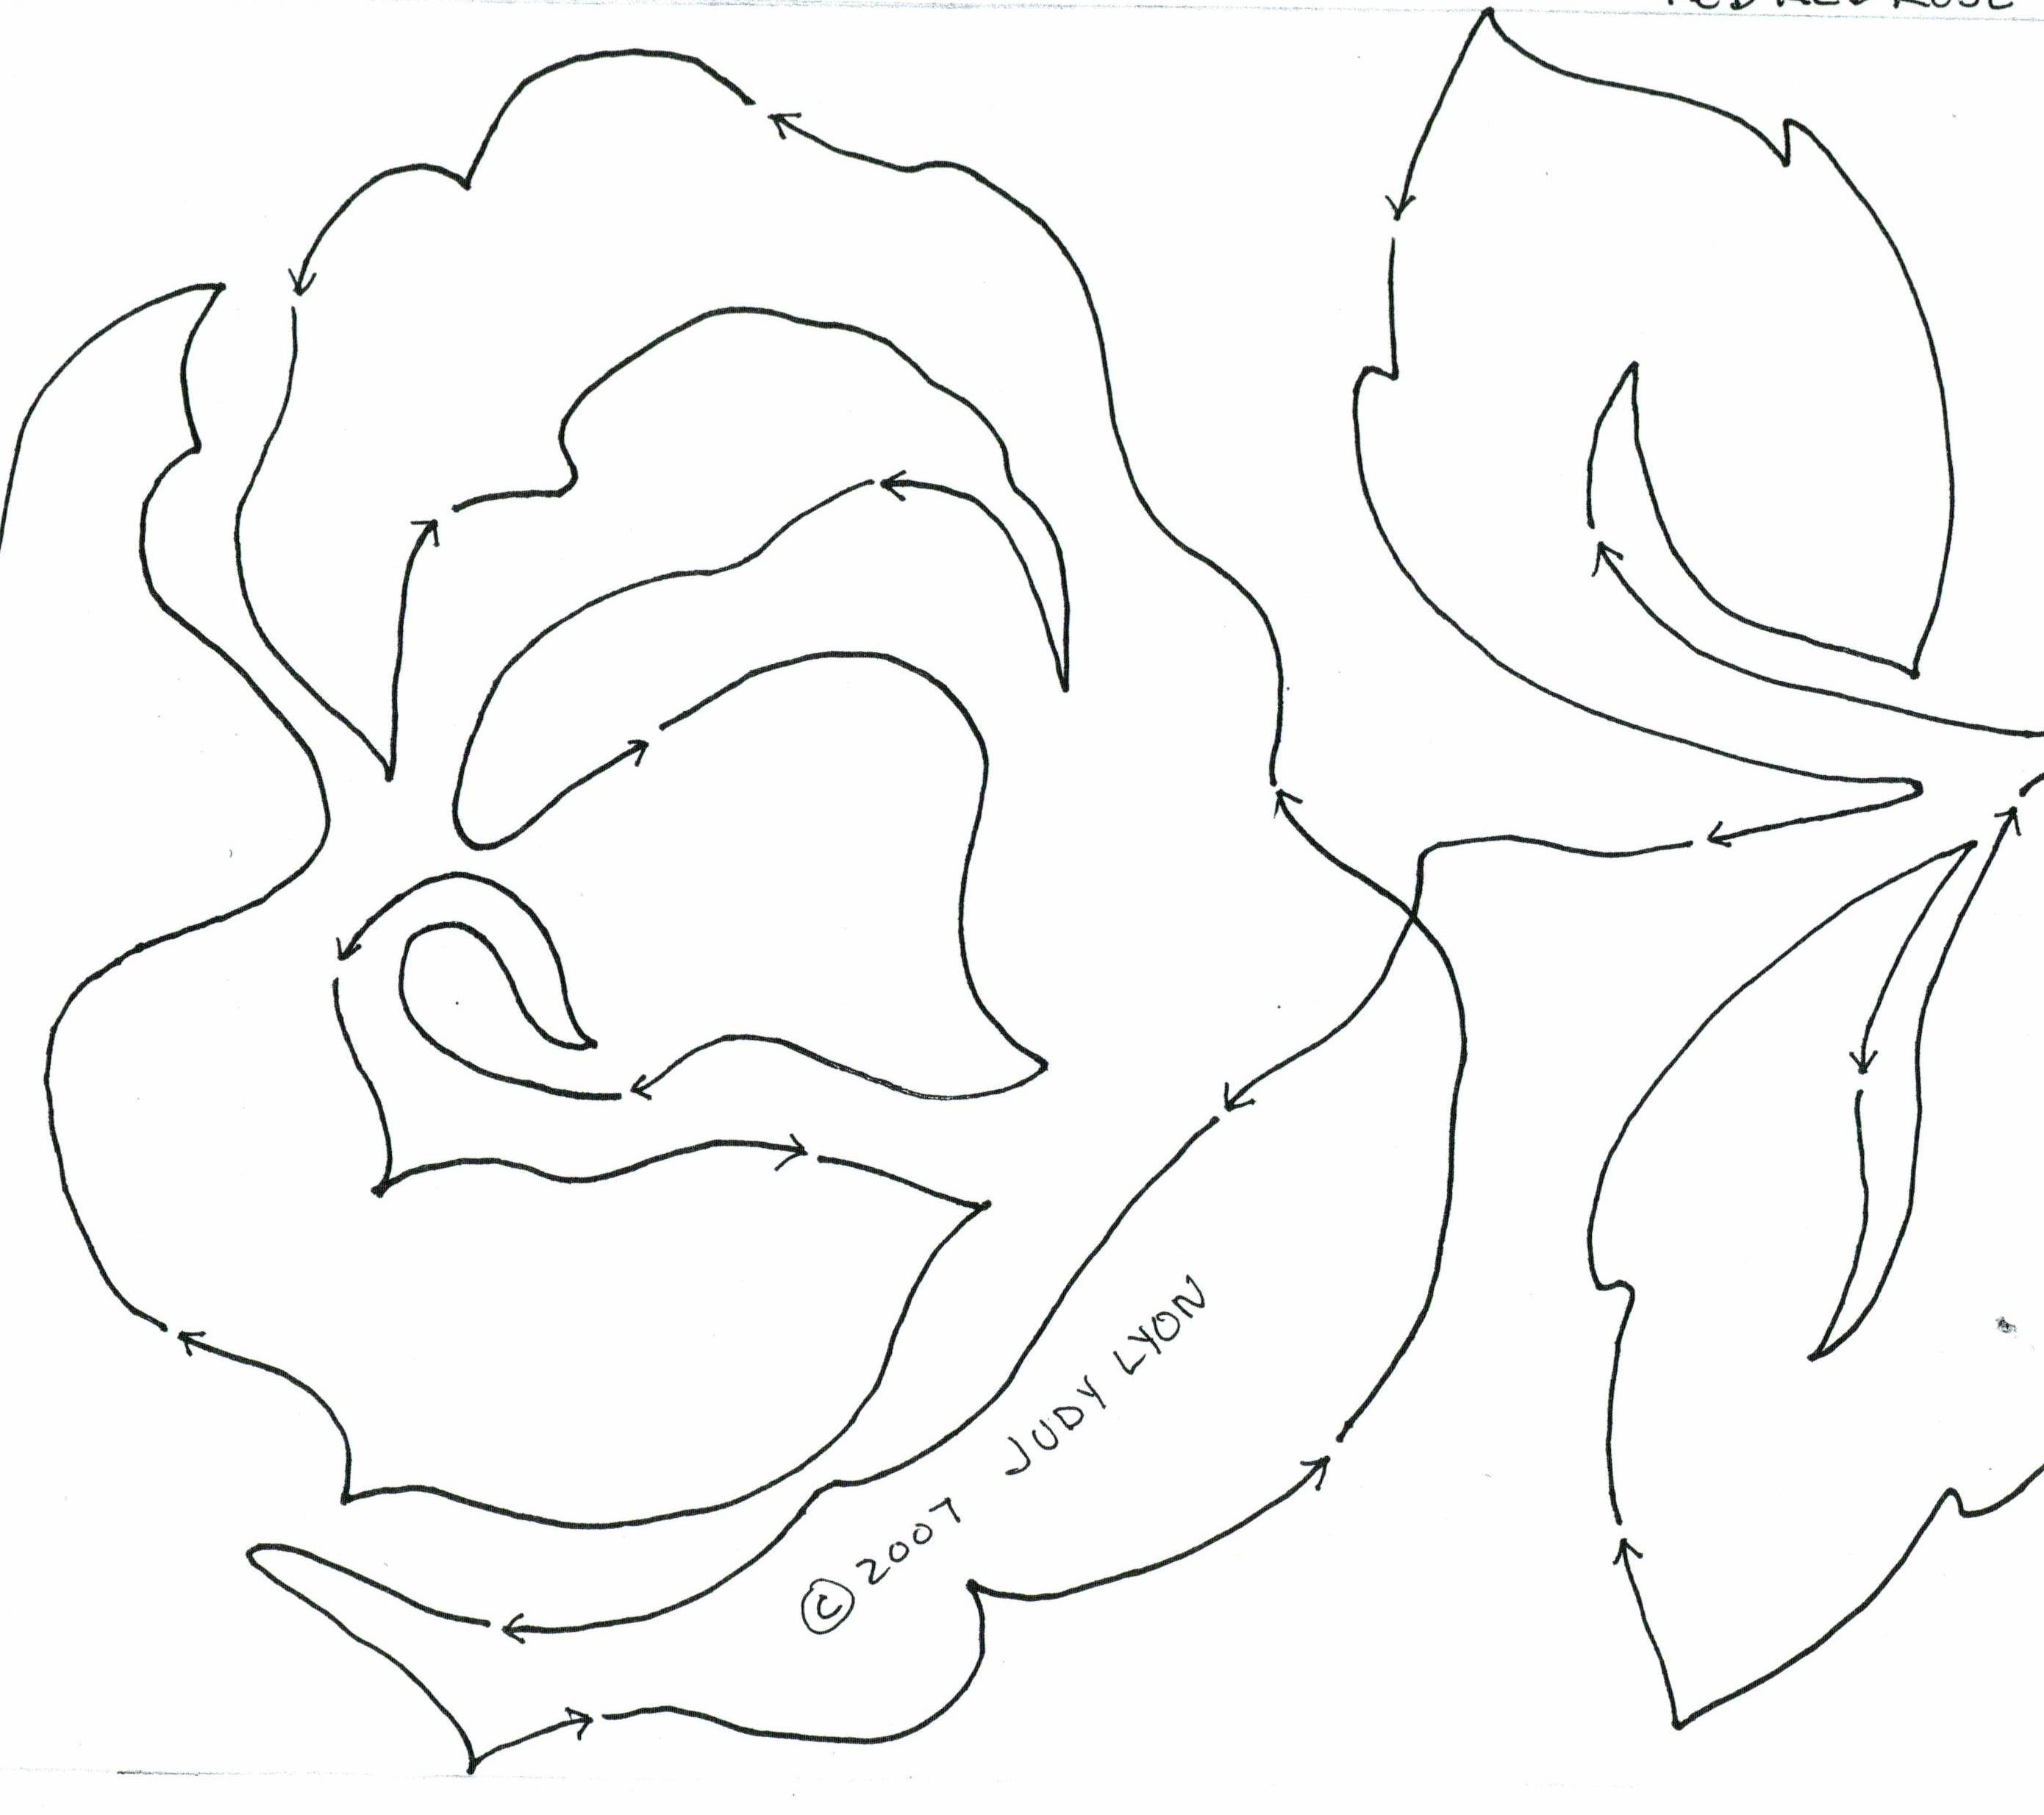 Red Red Rose 8 Border Pattern 8 Edge To Edge